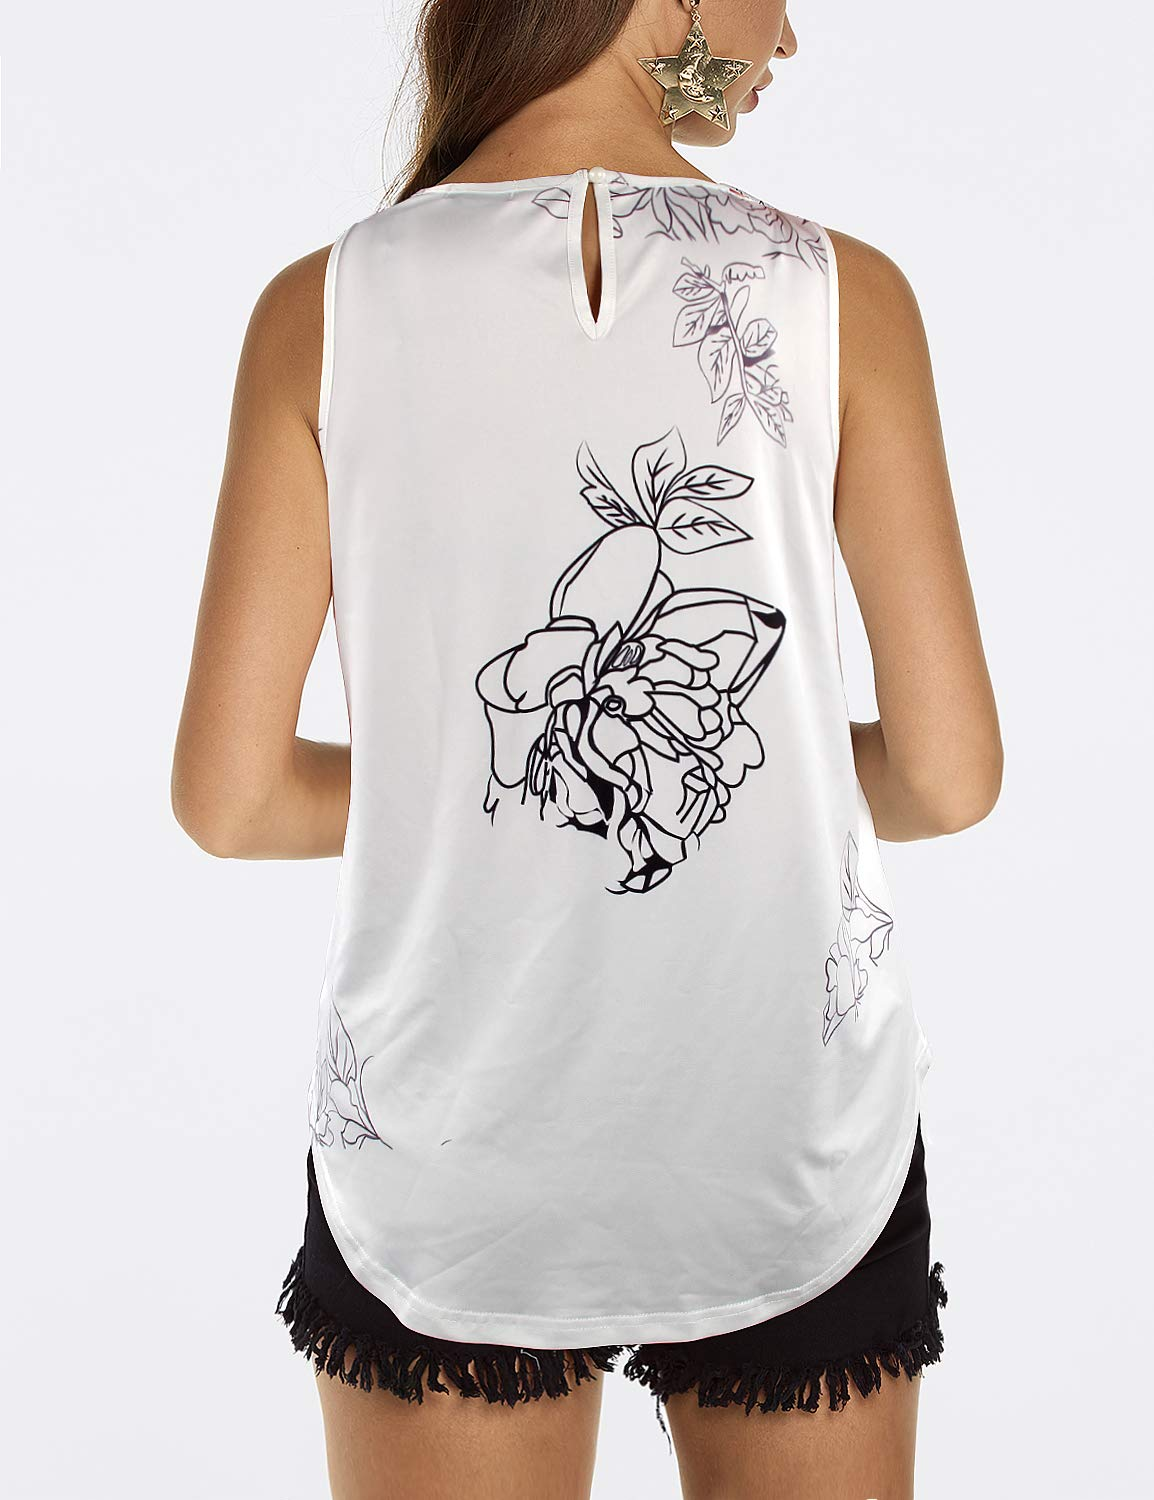 Blooming Jelly Womens Summer Sleeveless Loose Floral Tunic Vest Top for Ladies Going Out White,S